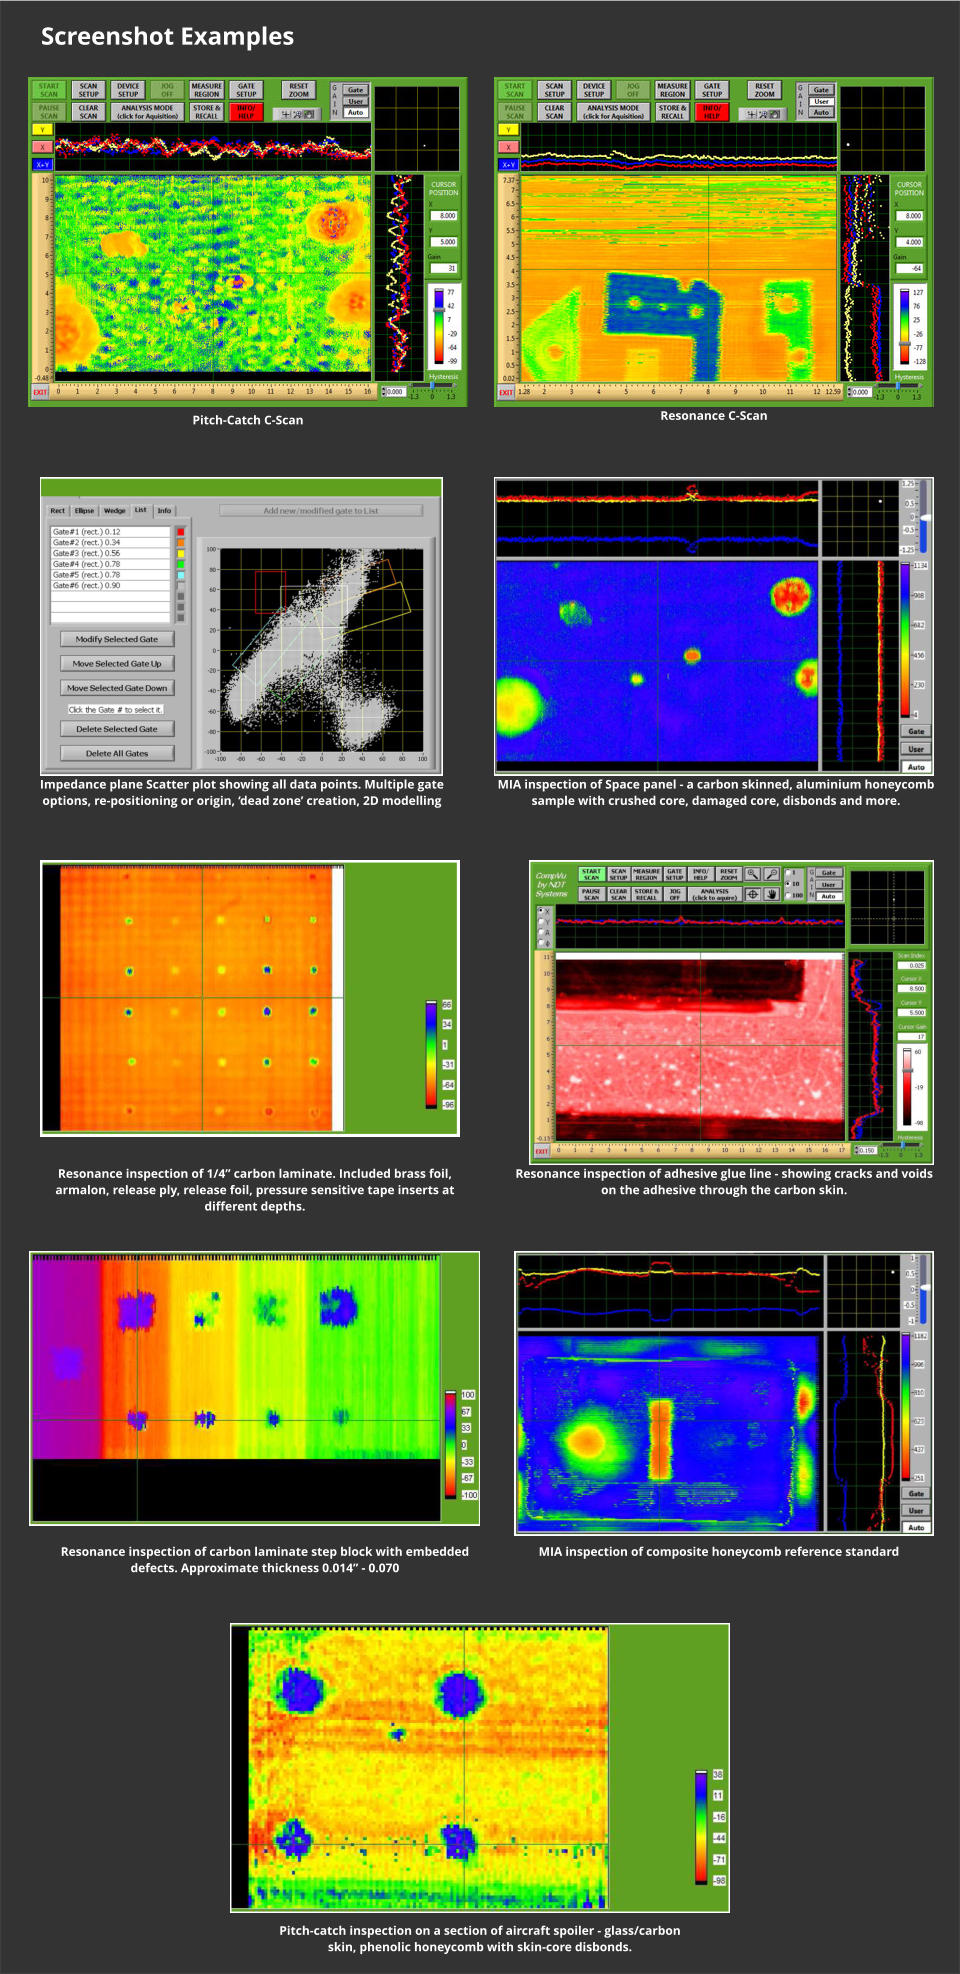 "Screenshot Examples Pitch-Catch C-Scan  Resonance C-Scan  Impedance plane Scatter plot showing all data points. Multiple gate options, re-positioning or origin, 'dead zone' creation, 2D modelling  MIA inspection of Space panel - a carbon skinned, aluminium honeycomb sample with crushed core, damaged core, disbonds and more.  Resonance inspection of 1/4"" carbon laminate. Included brass foil, armalon, release ply, release foil, pressure sensitive tape inserts at different depths.    Resonance inspection of adhesive glue line - showing cracks and voids on the adhesive through the carbon skin.  Resonance inspection of carbon laminate step block with embedded defects. Approximate thickness 0.014"" - 0.070    MIA inspection of composite honeycomb reference standard    Pitch-catch inspection on a section of aircraft spoiler - glass/carbon skin, phenolic honeycomb with skin-core disbonds."